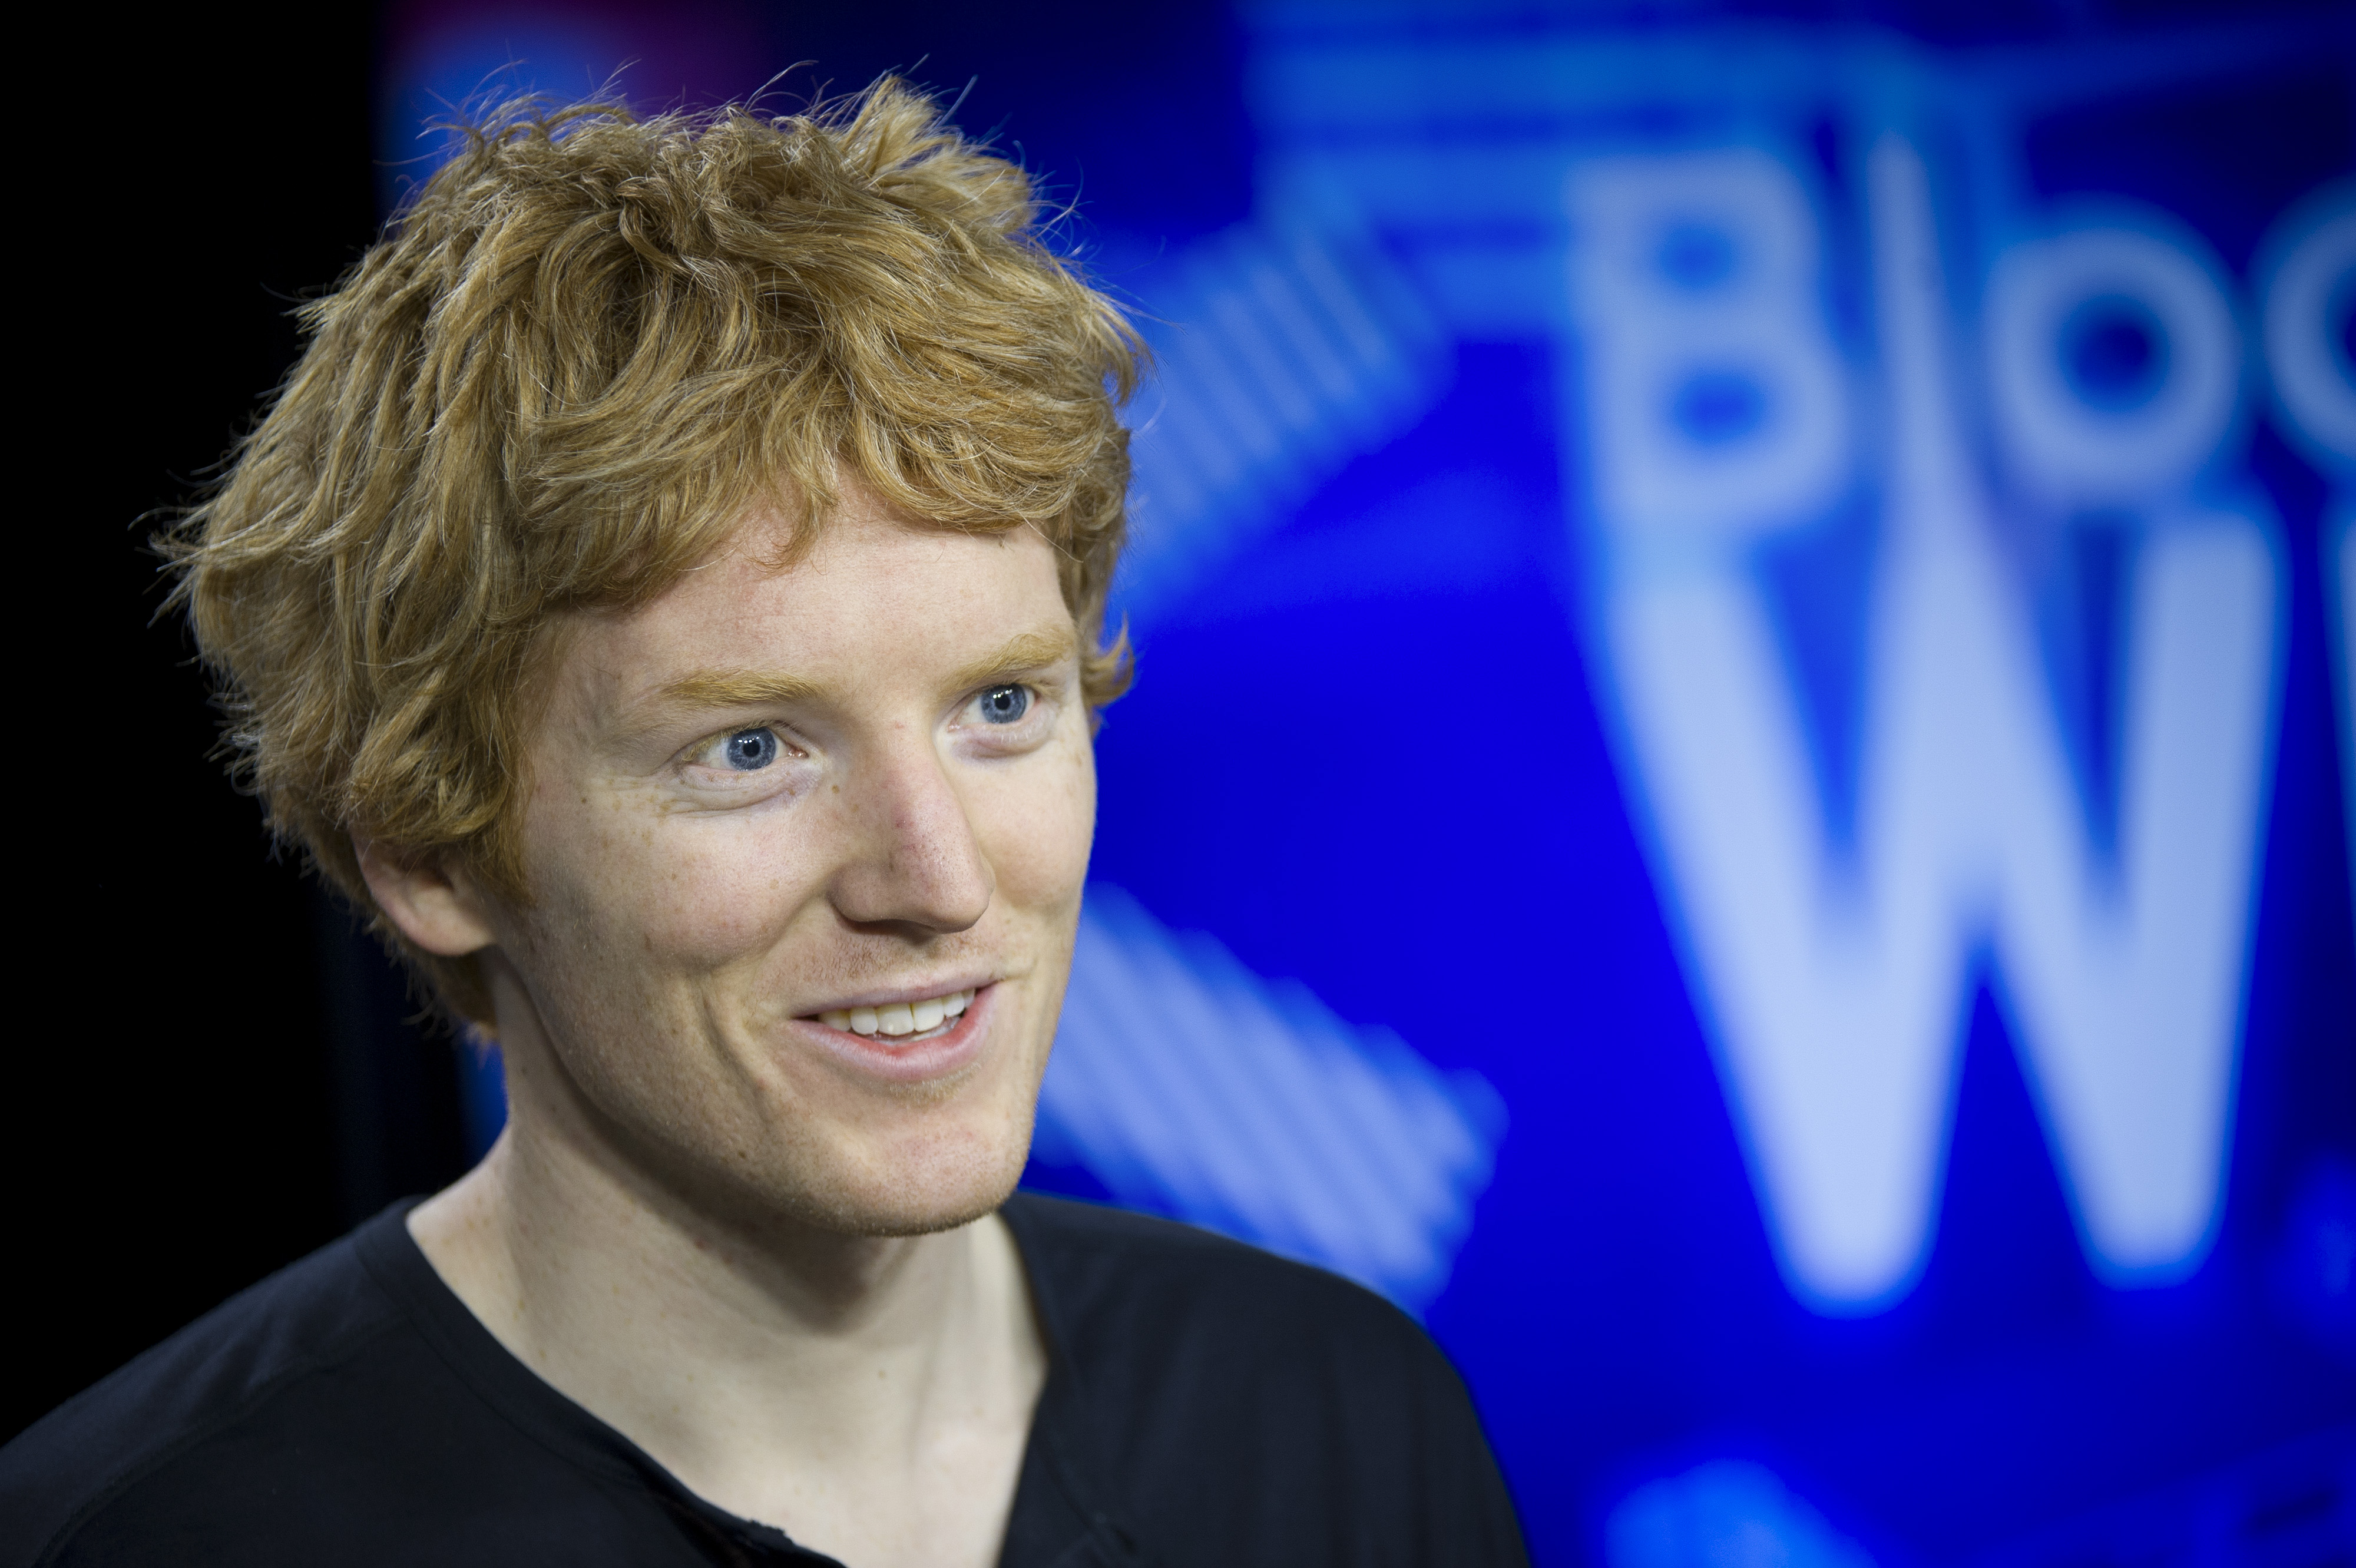 Patrick Collison, co-founder and chief executive officer of Stripe Inc., speaks during a Bloomberg West Television interview in San Francisco, California, on Tuesday, March 18, 2014.